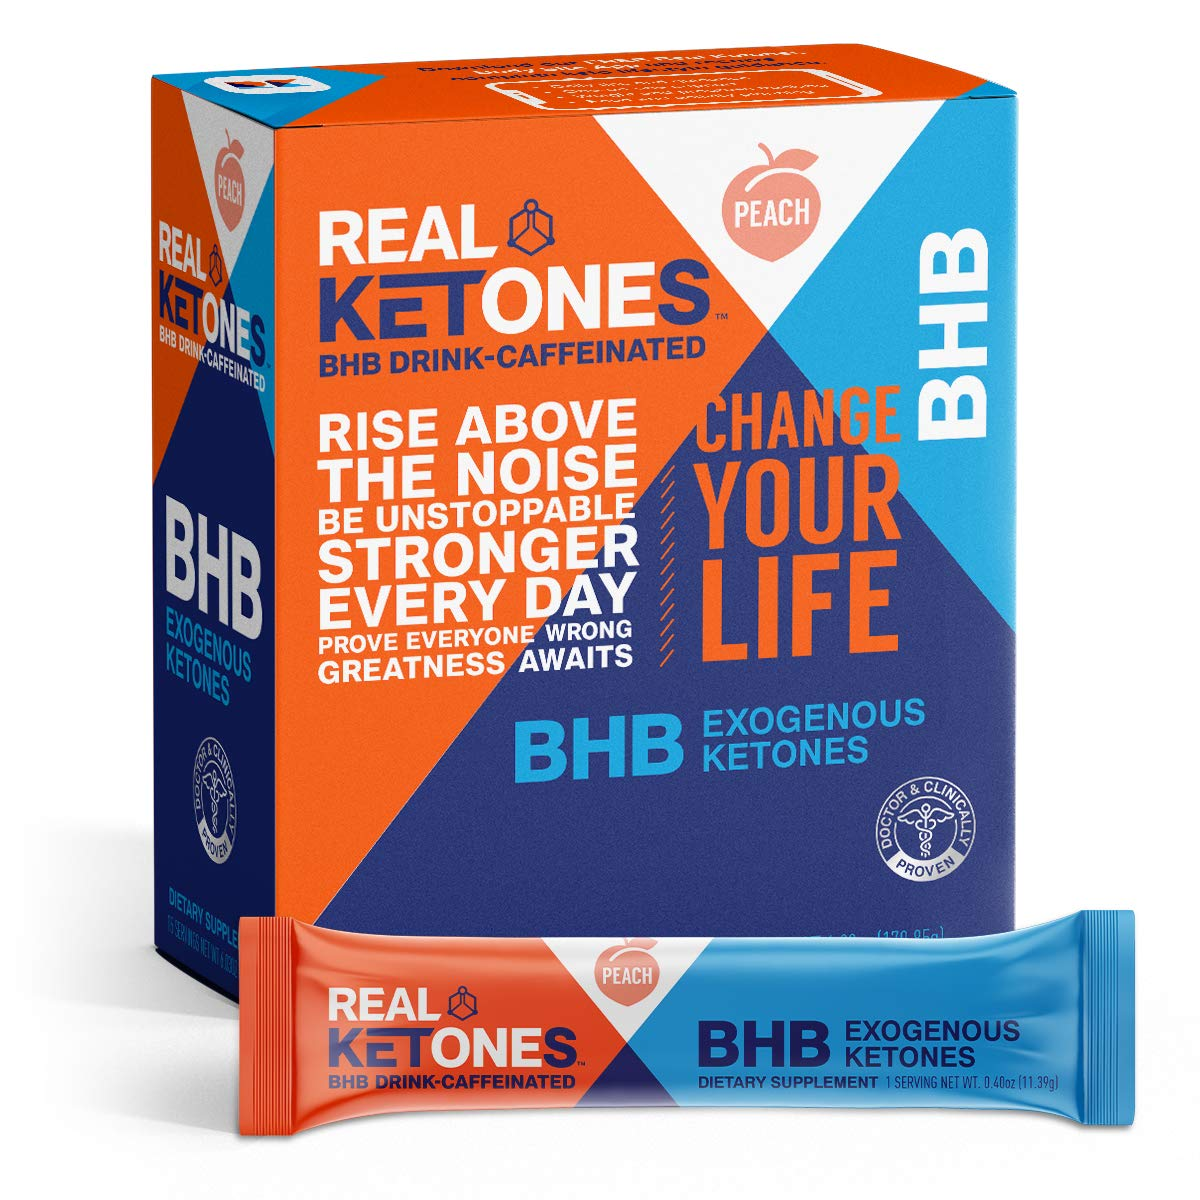 Real Ketones - BHB + Caffeine Exogenous Ketone Powder in Convenient Travel Ready Single-Serve Stick Packs, Peach Flavor by Real Ketones